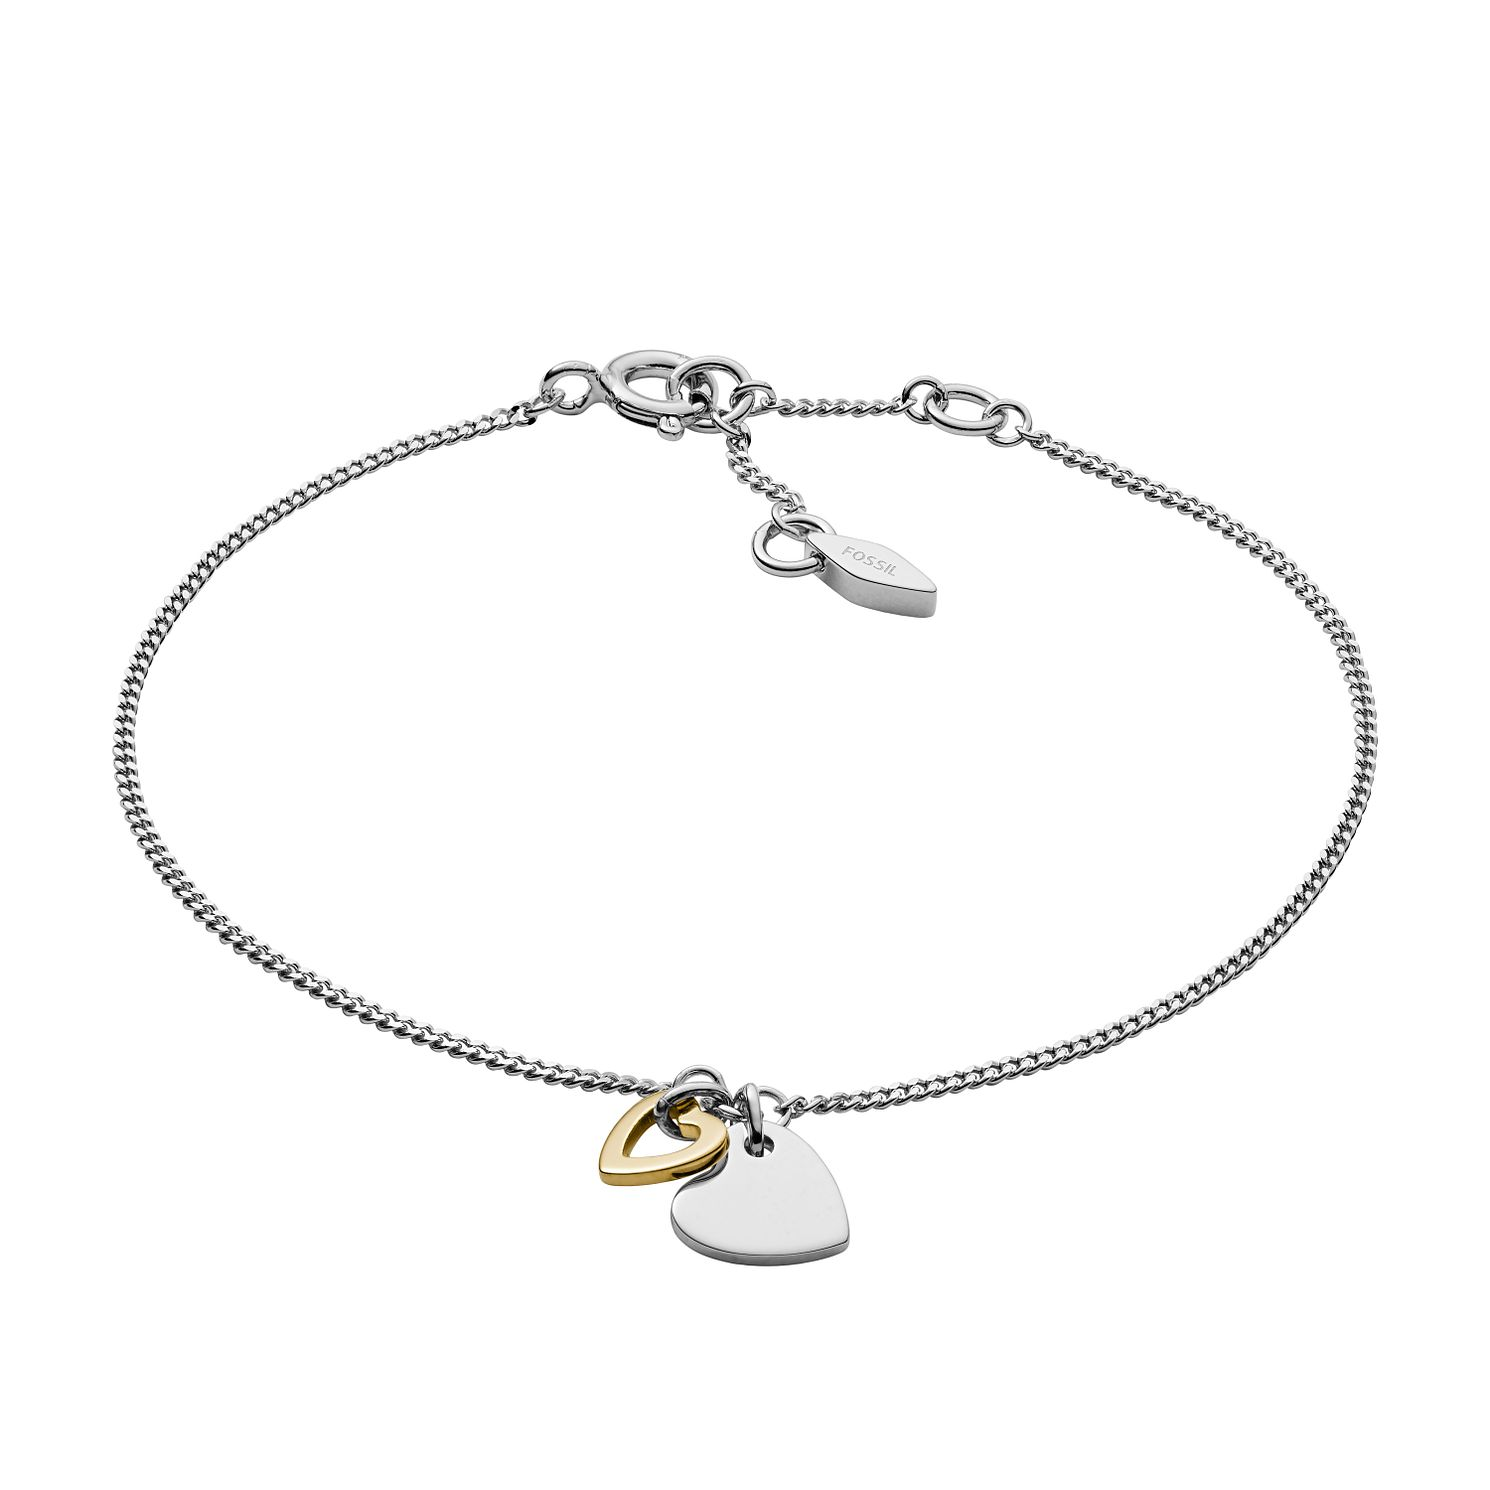 Fossil Rose Gold Tone & Silver Open Heart Bracelet - Product number 3086704